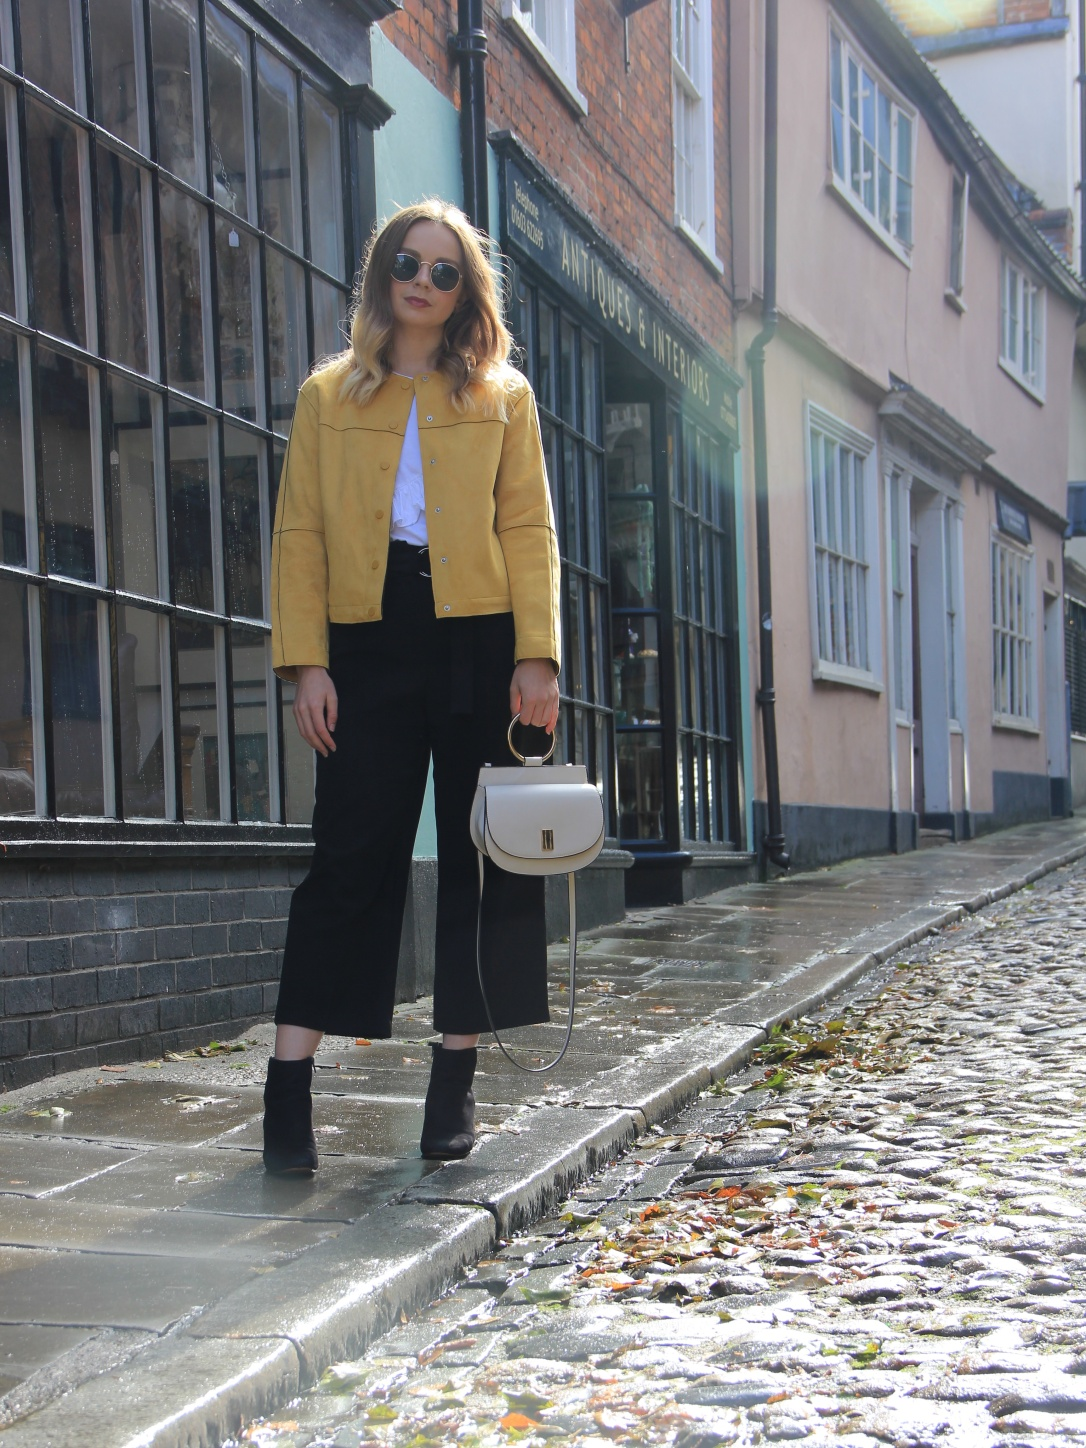 Zara yellow jacket outfit